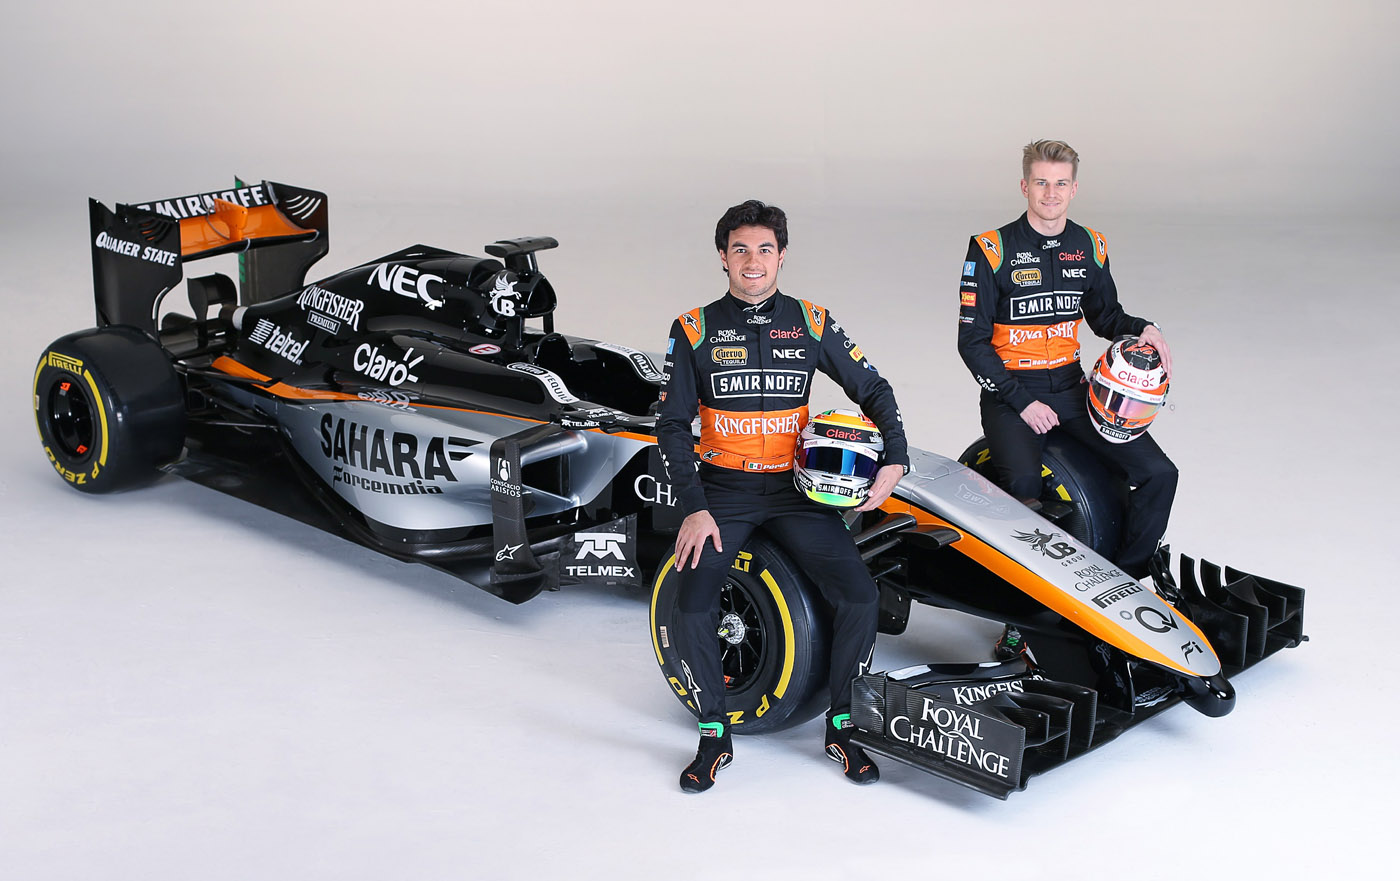 Force India 2015 Formula 1 car Sergio Perez en Nico Hülkenberg